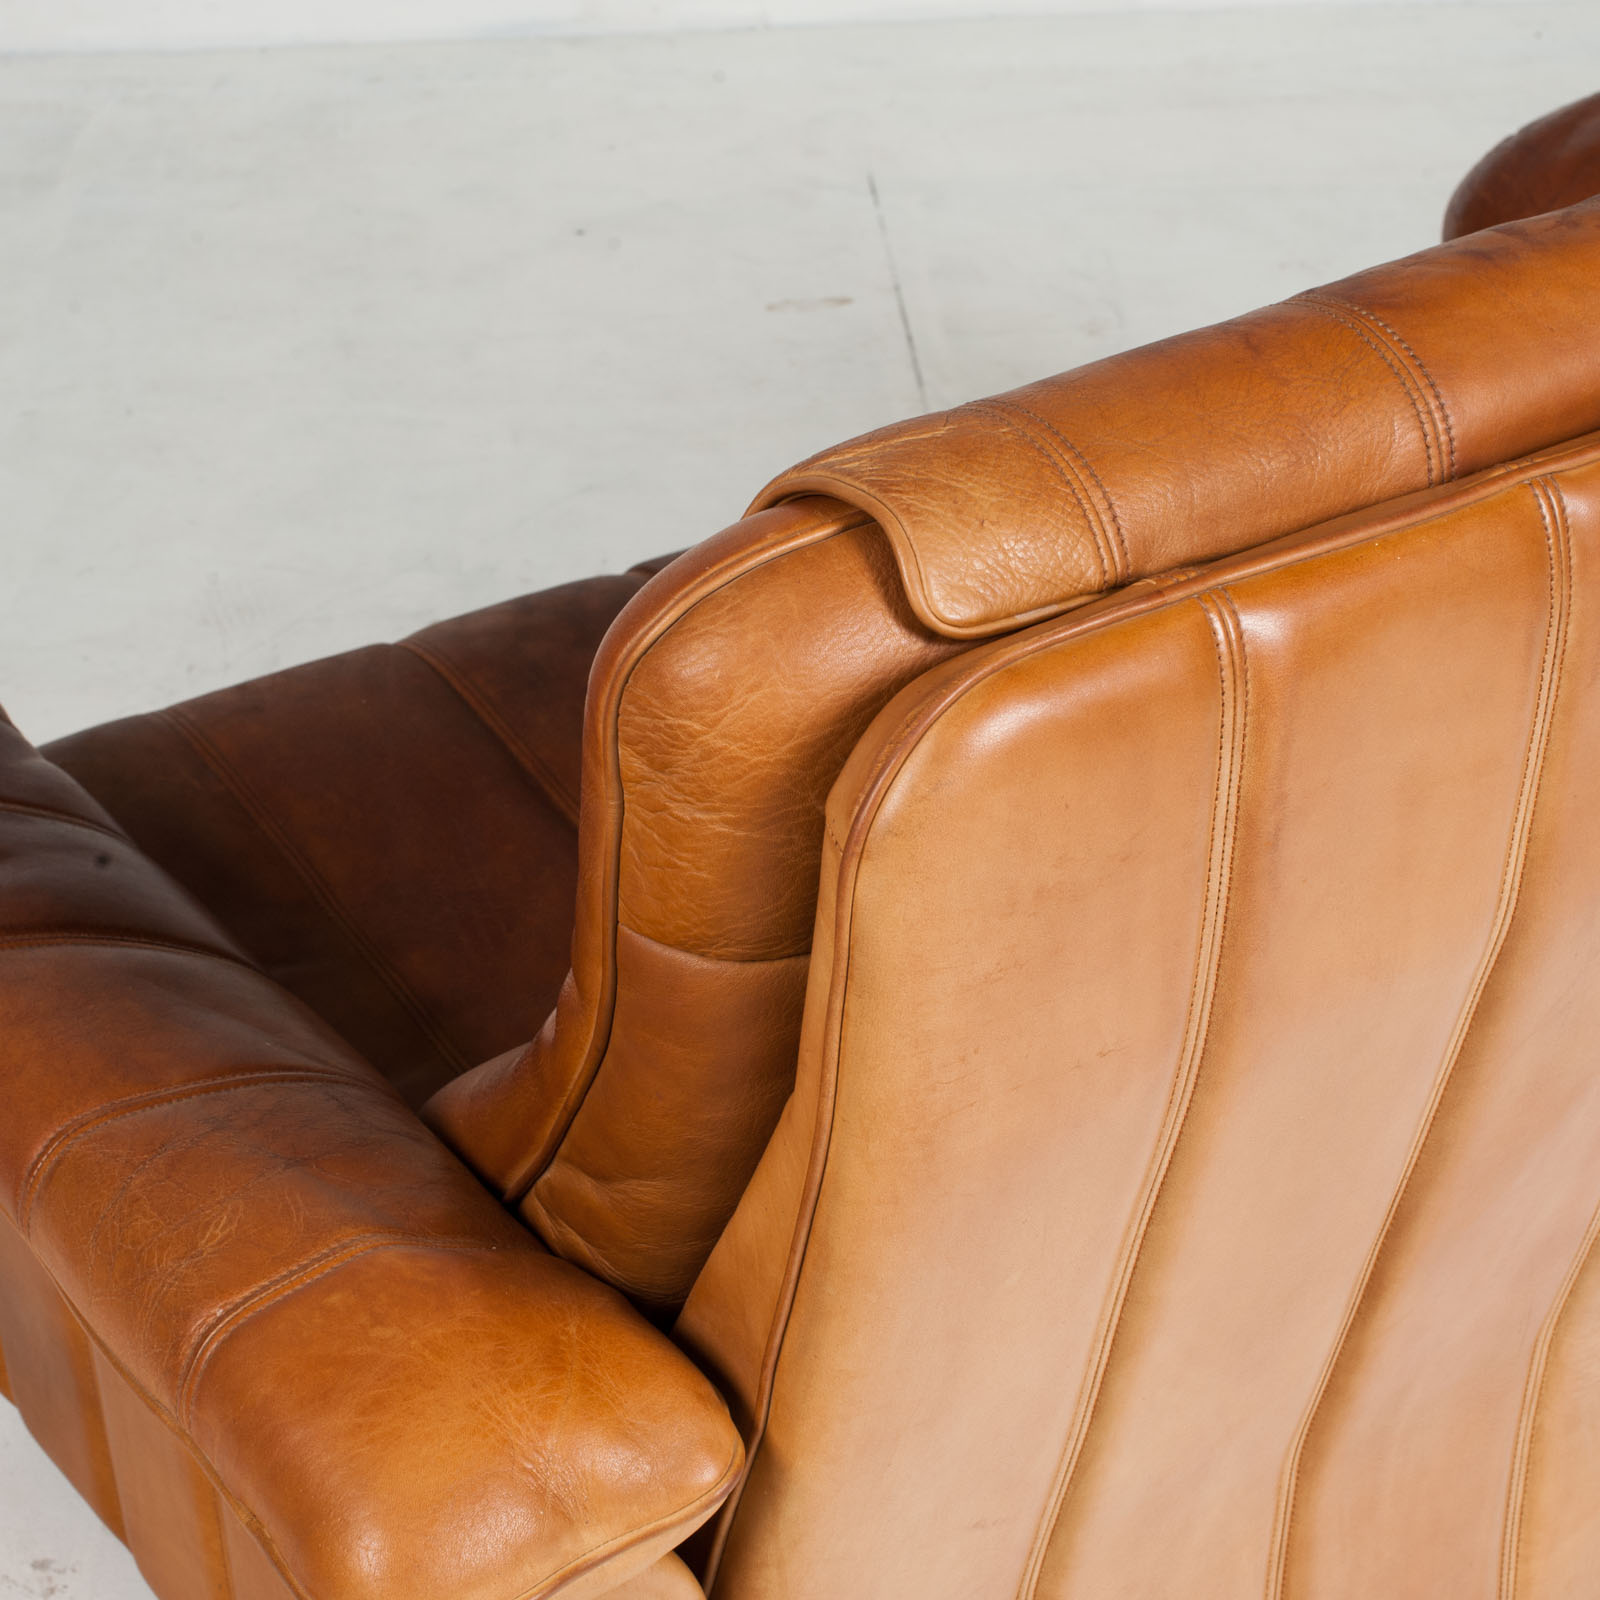 2 Seat Sofa By De Sede In Tan Leather 1970s Switzerland 14